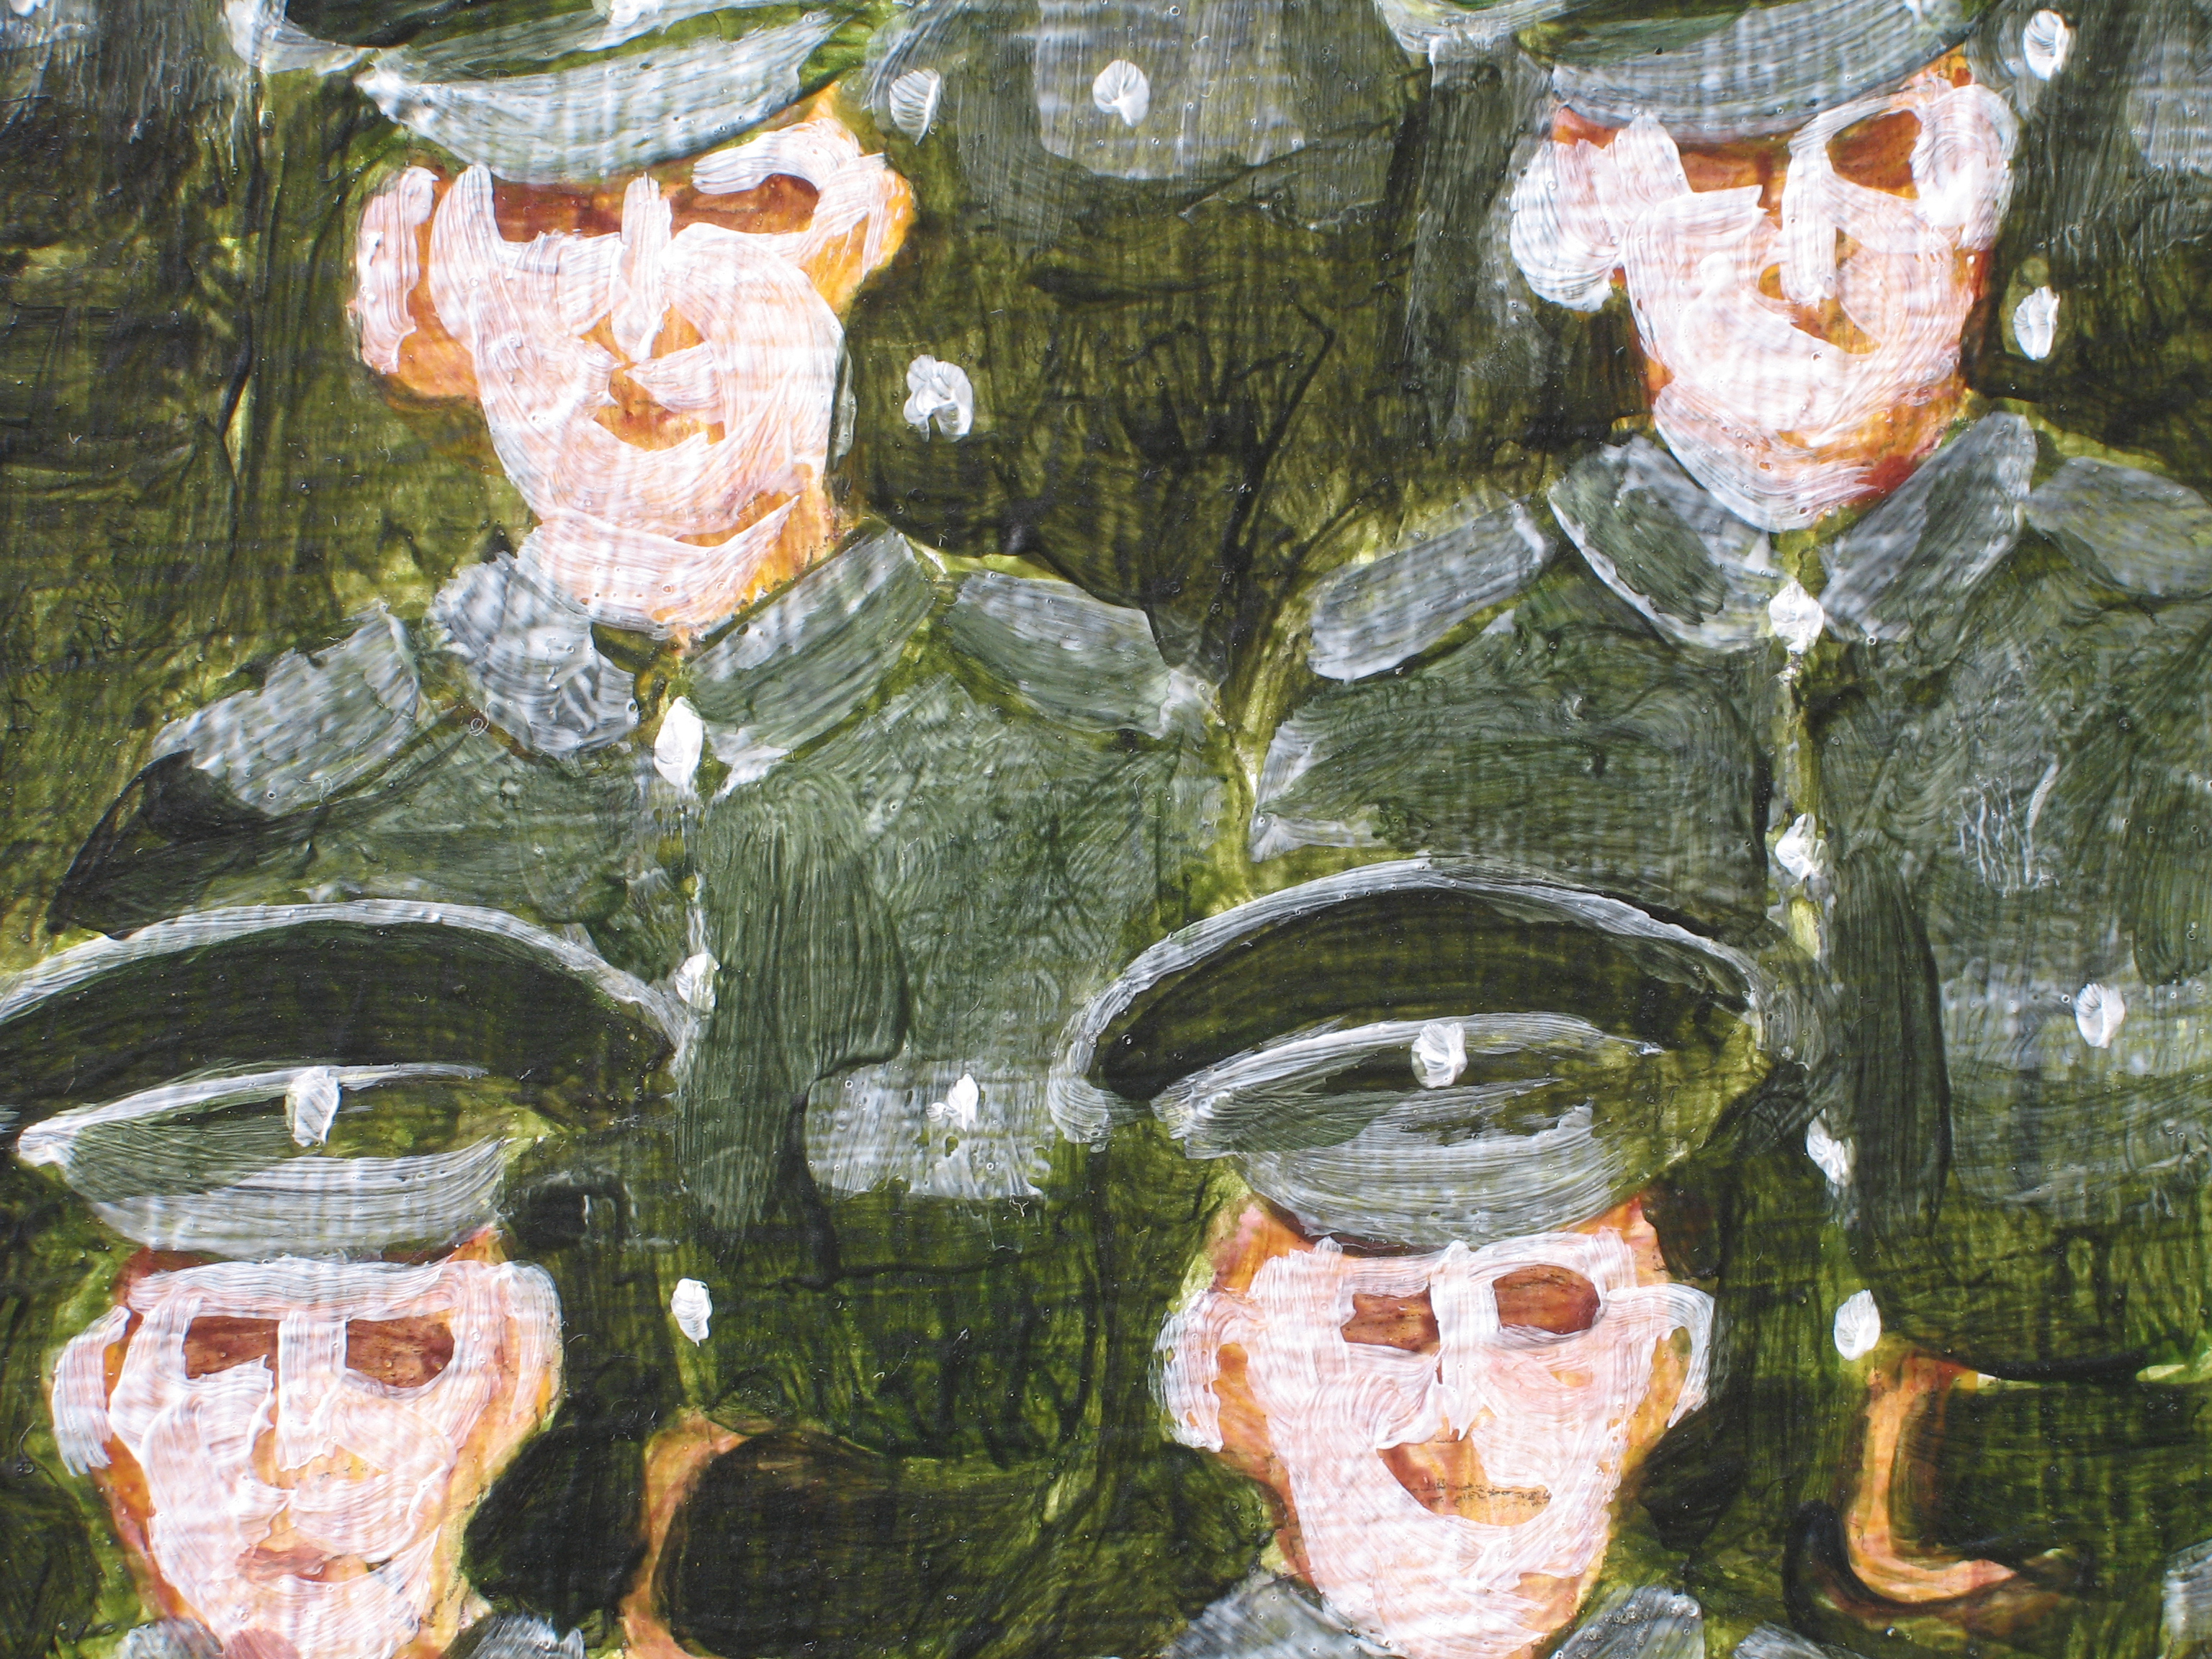 Newfoundland Regiment, (panel 1 detail)